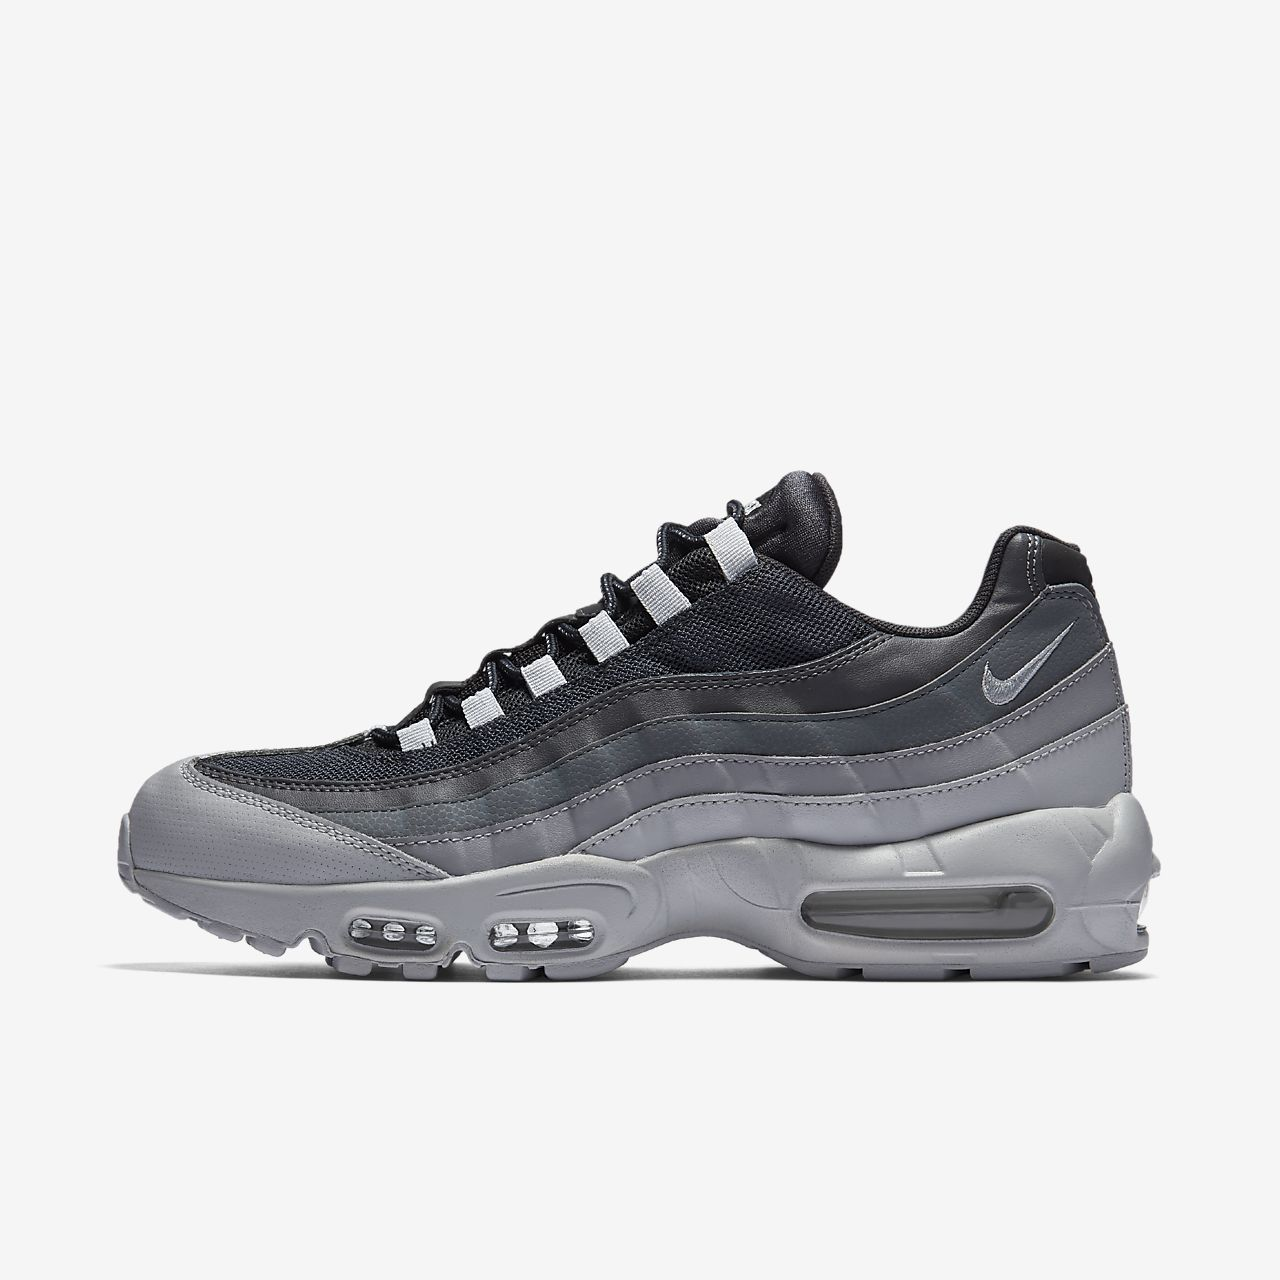 Vente air max 95 pas cher jd Chaussures 2722